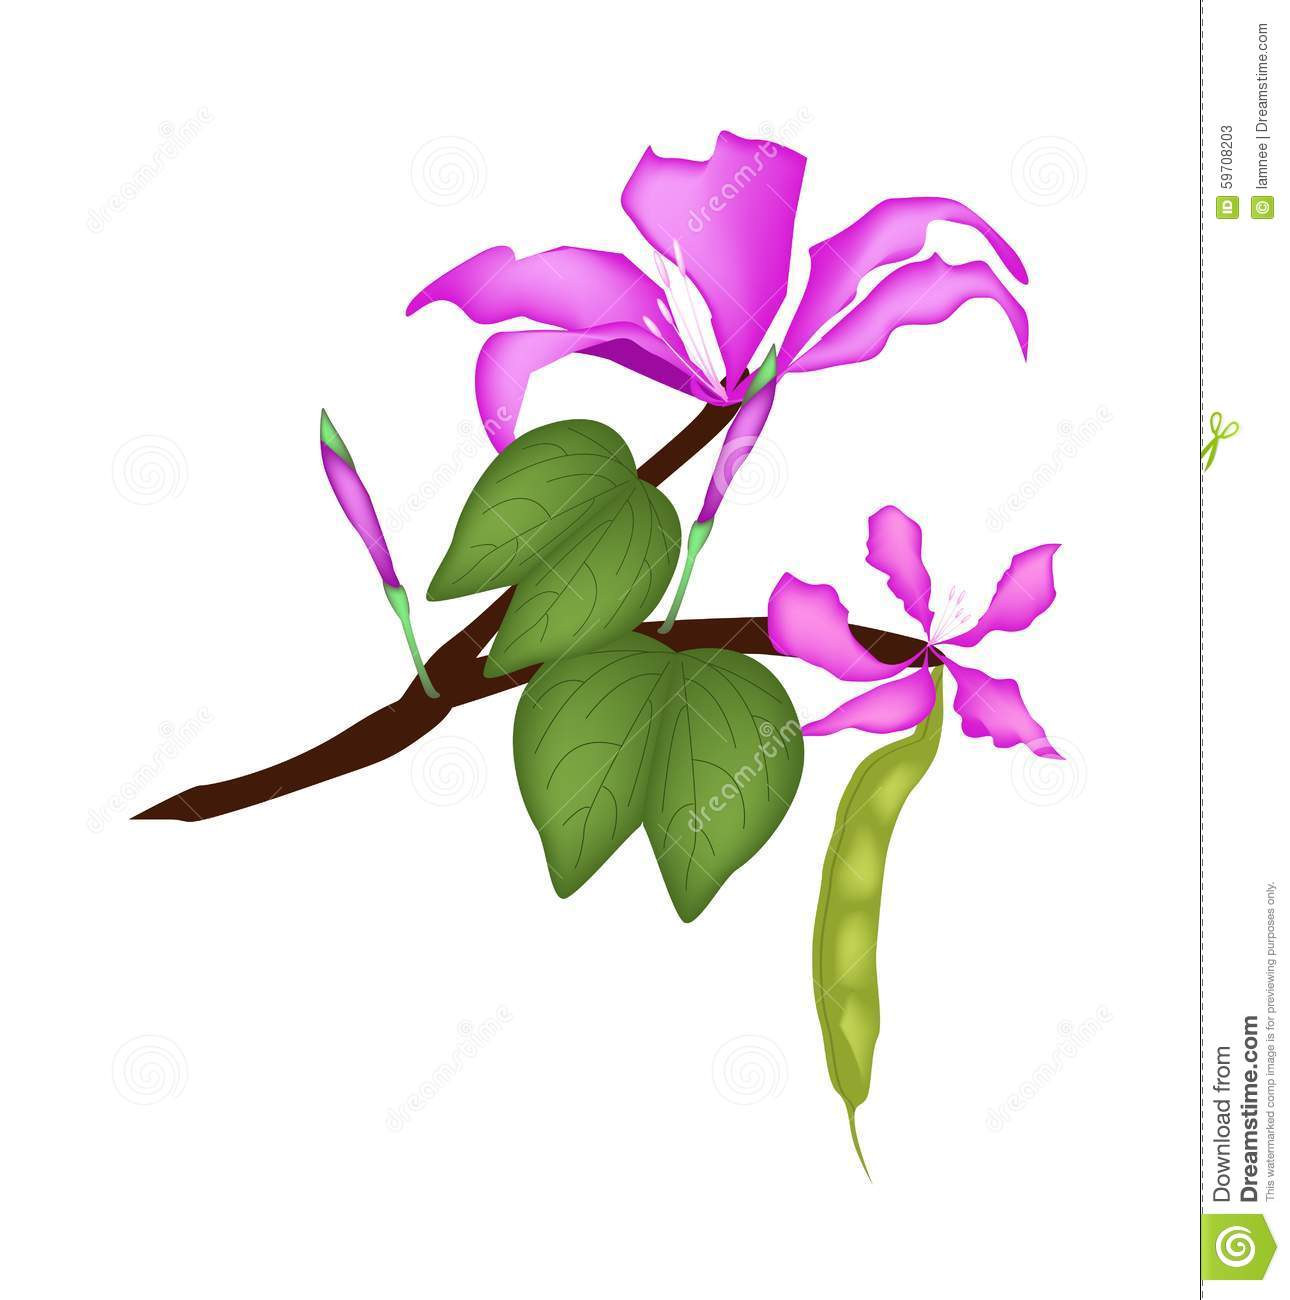 Purpurea Stock Illustrations.